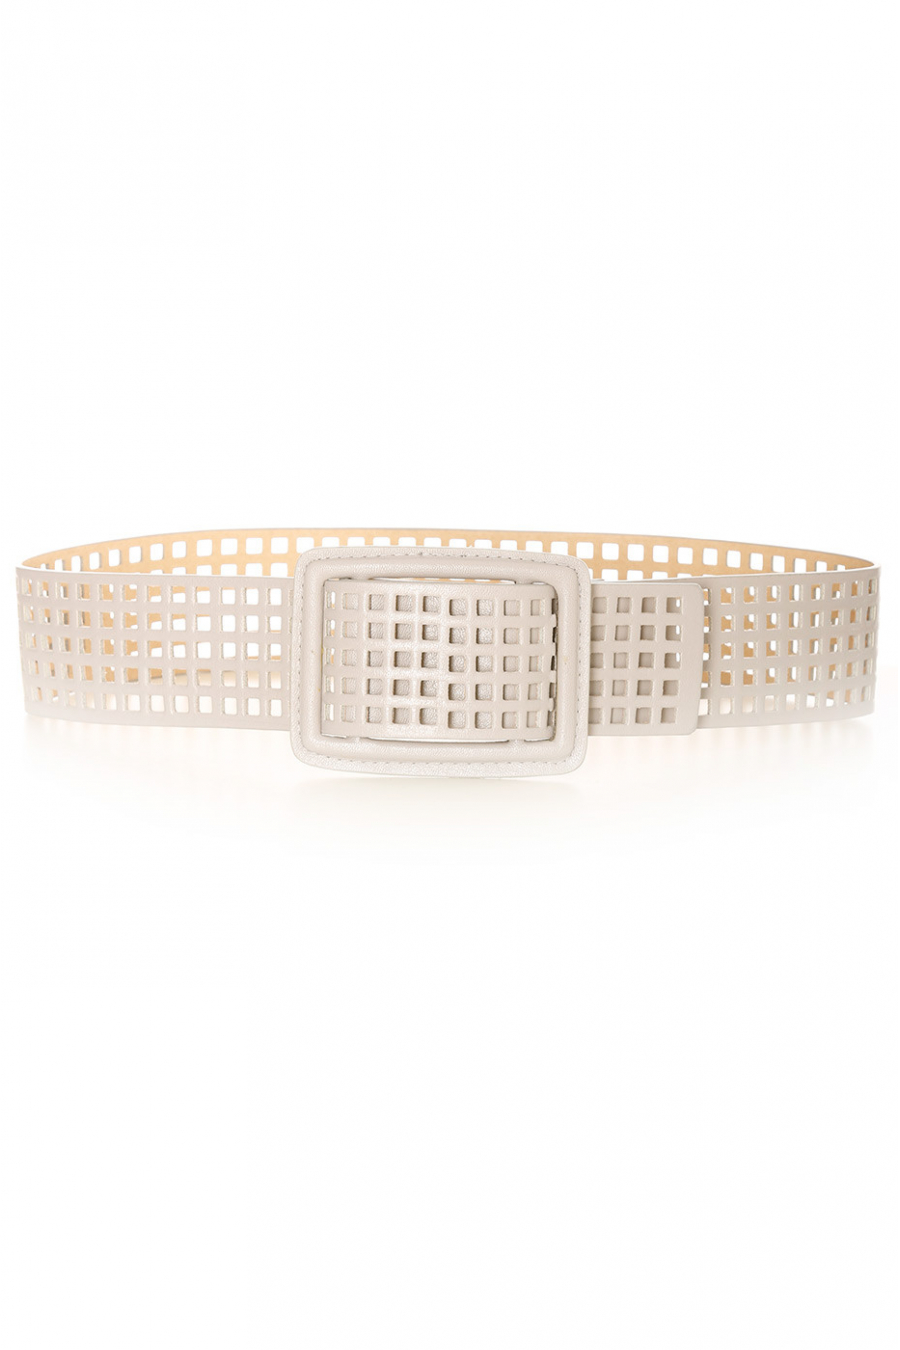 Gray grid belt with holes. SG-0452